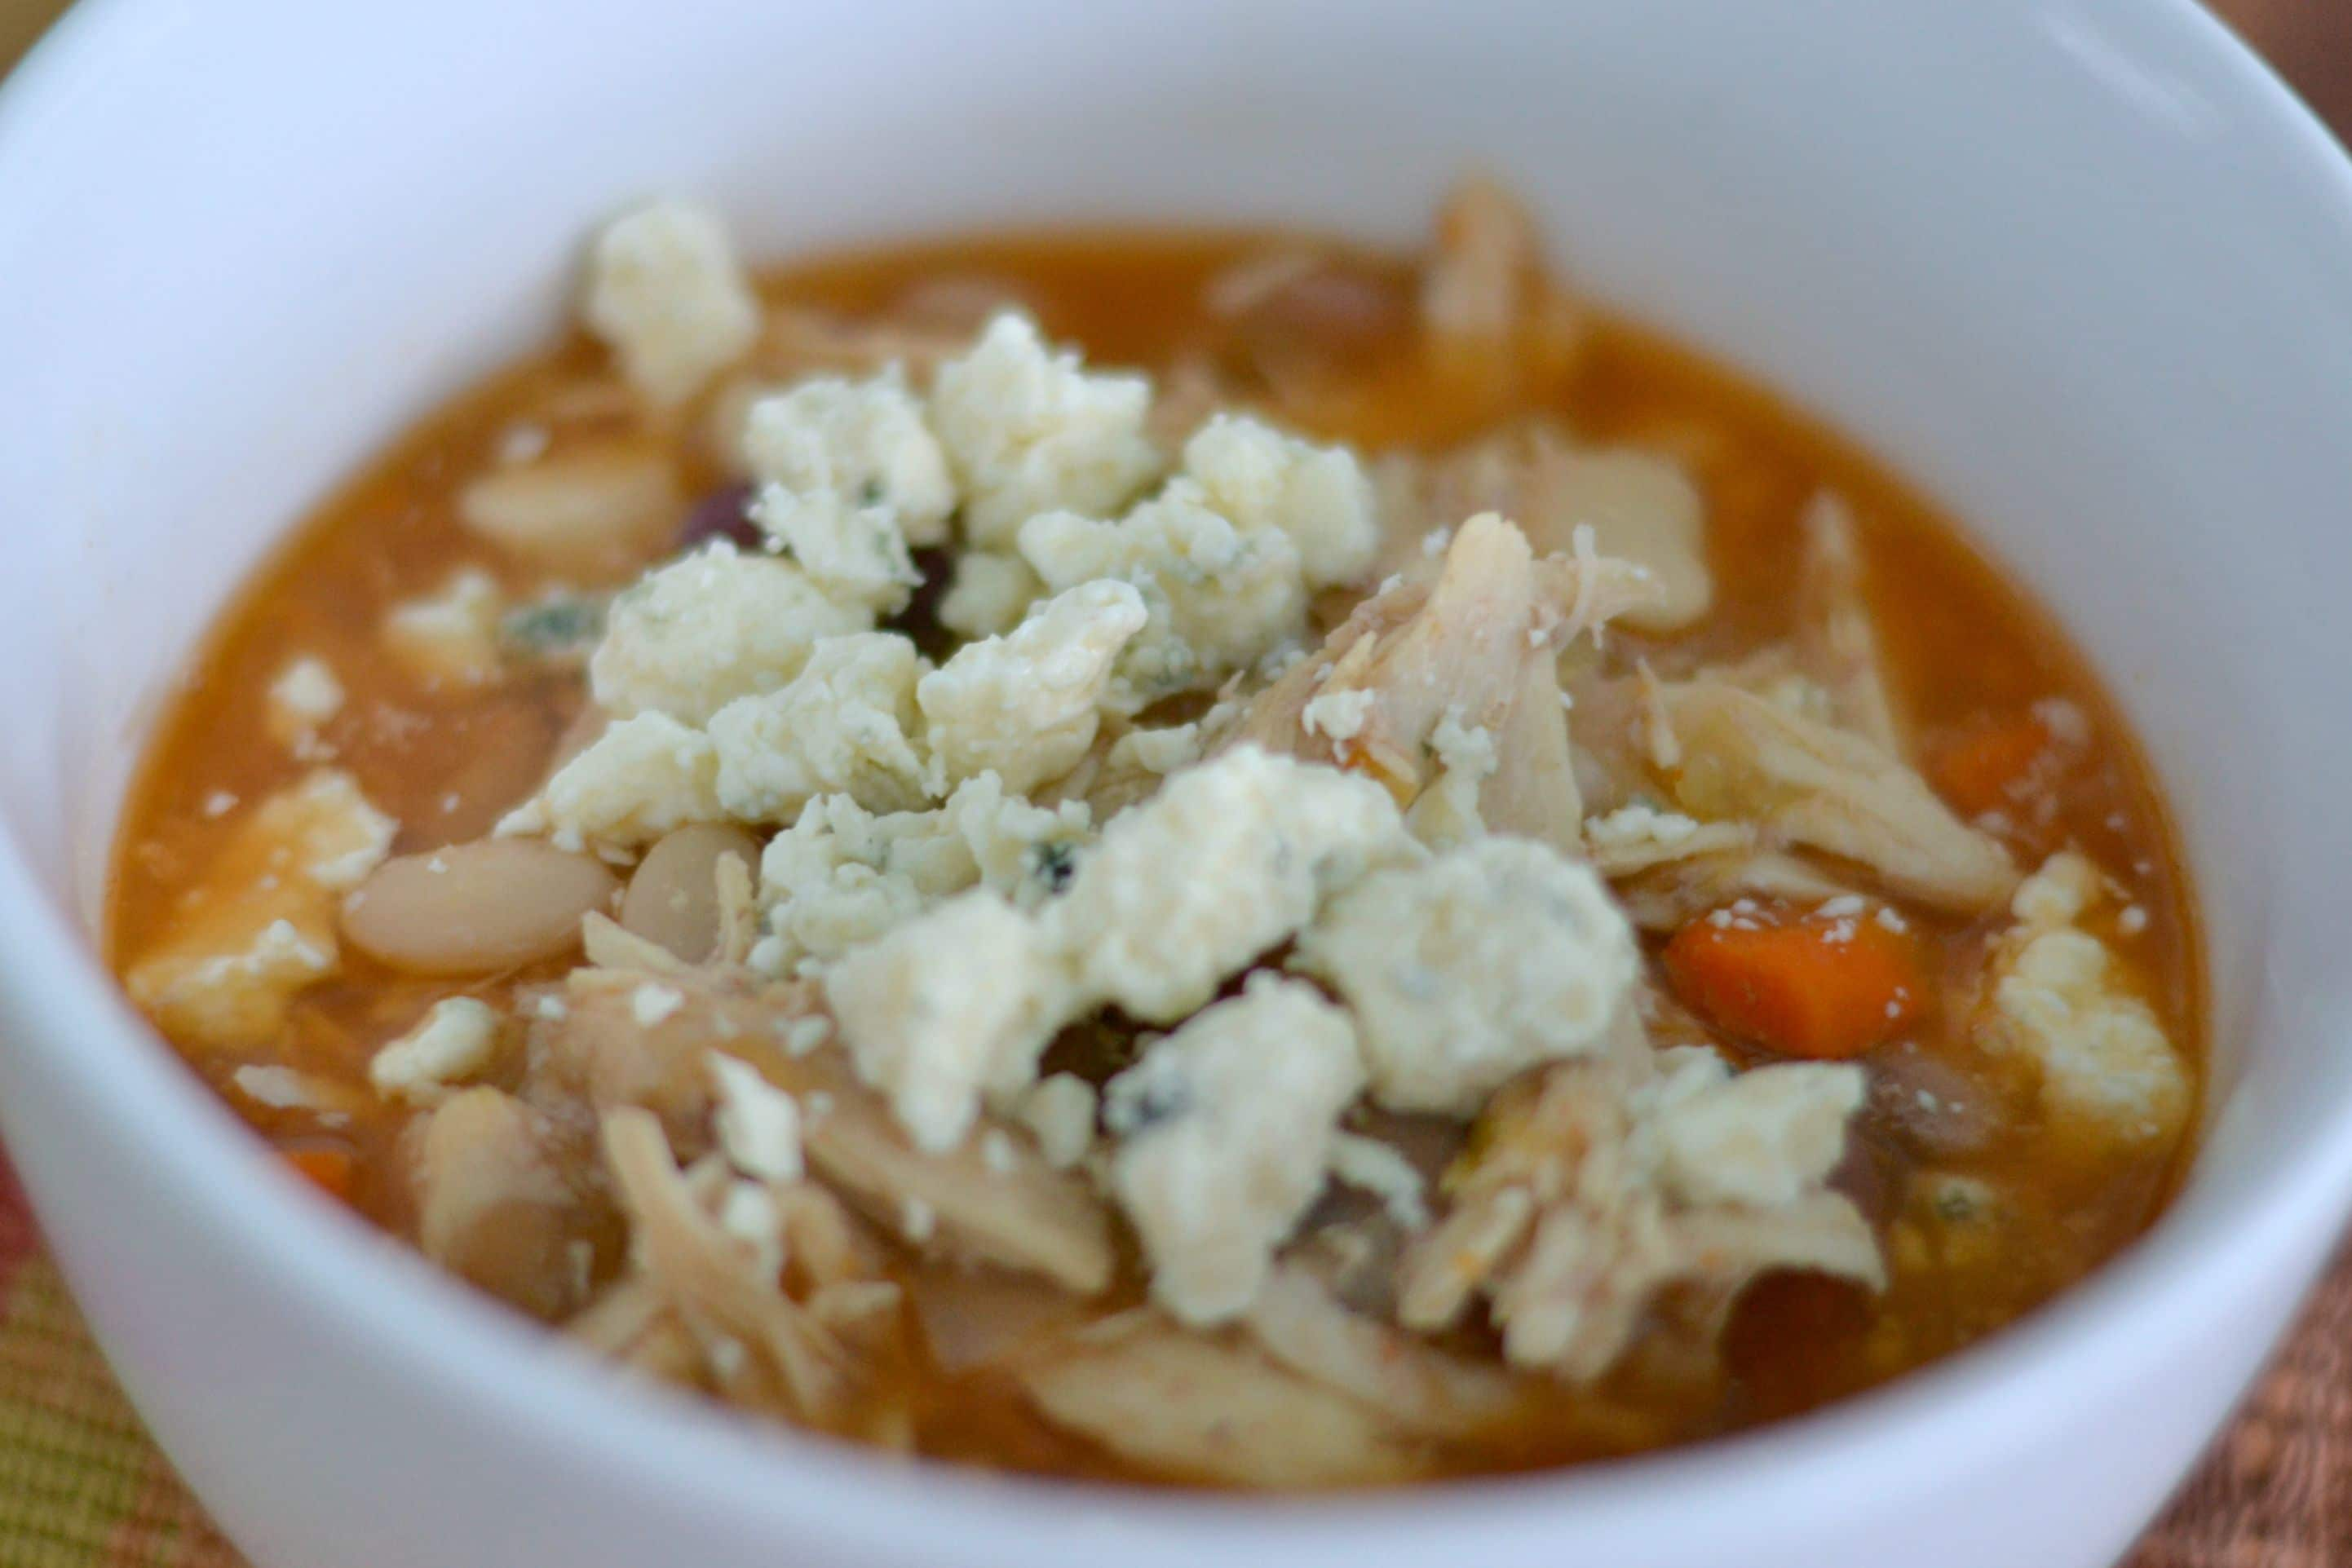 This buffalo chicken soup goes from freezer to slow cooker for a tasty meal.